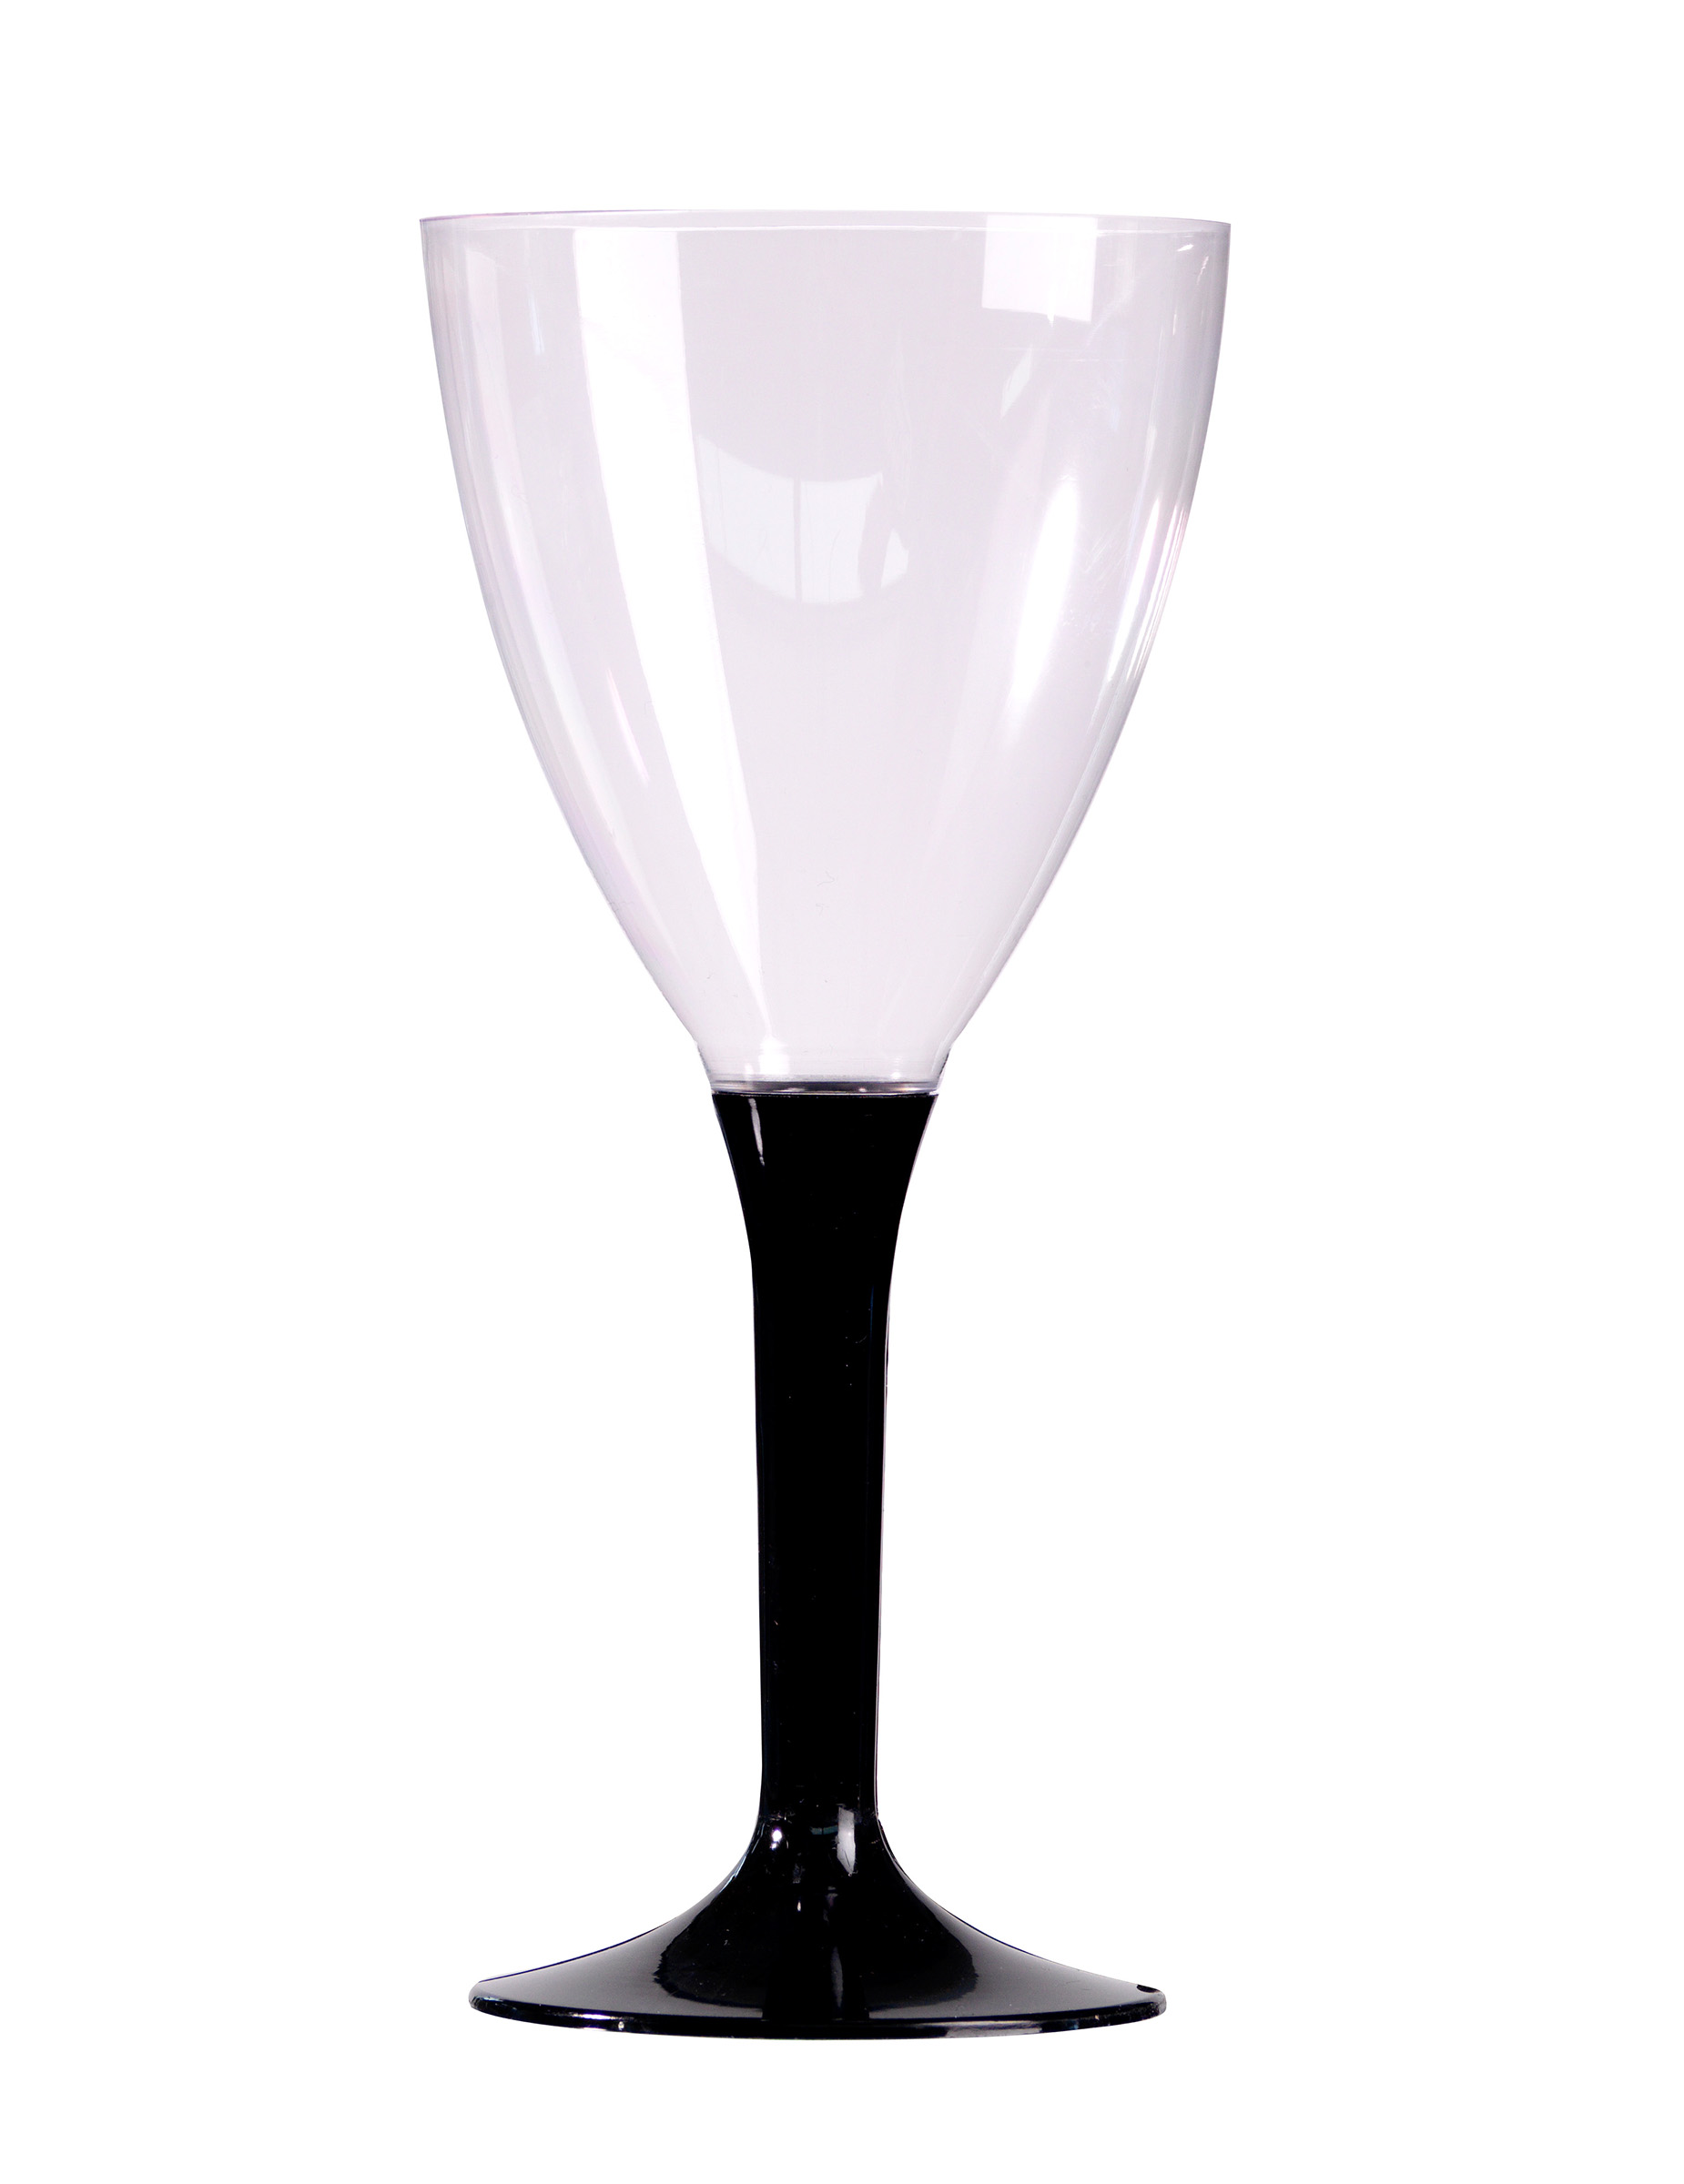 10 verres a vin pied noir en plastique d coration anniversaire et f tes th me sur vegaoo party. Black Bedroom Furniture Sets. Home Design Ideas